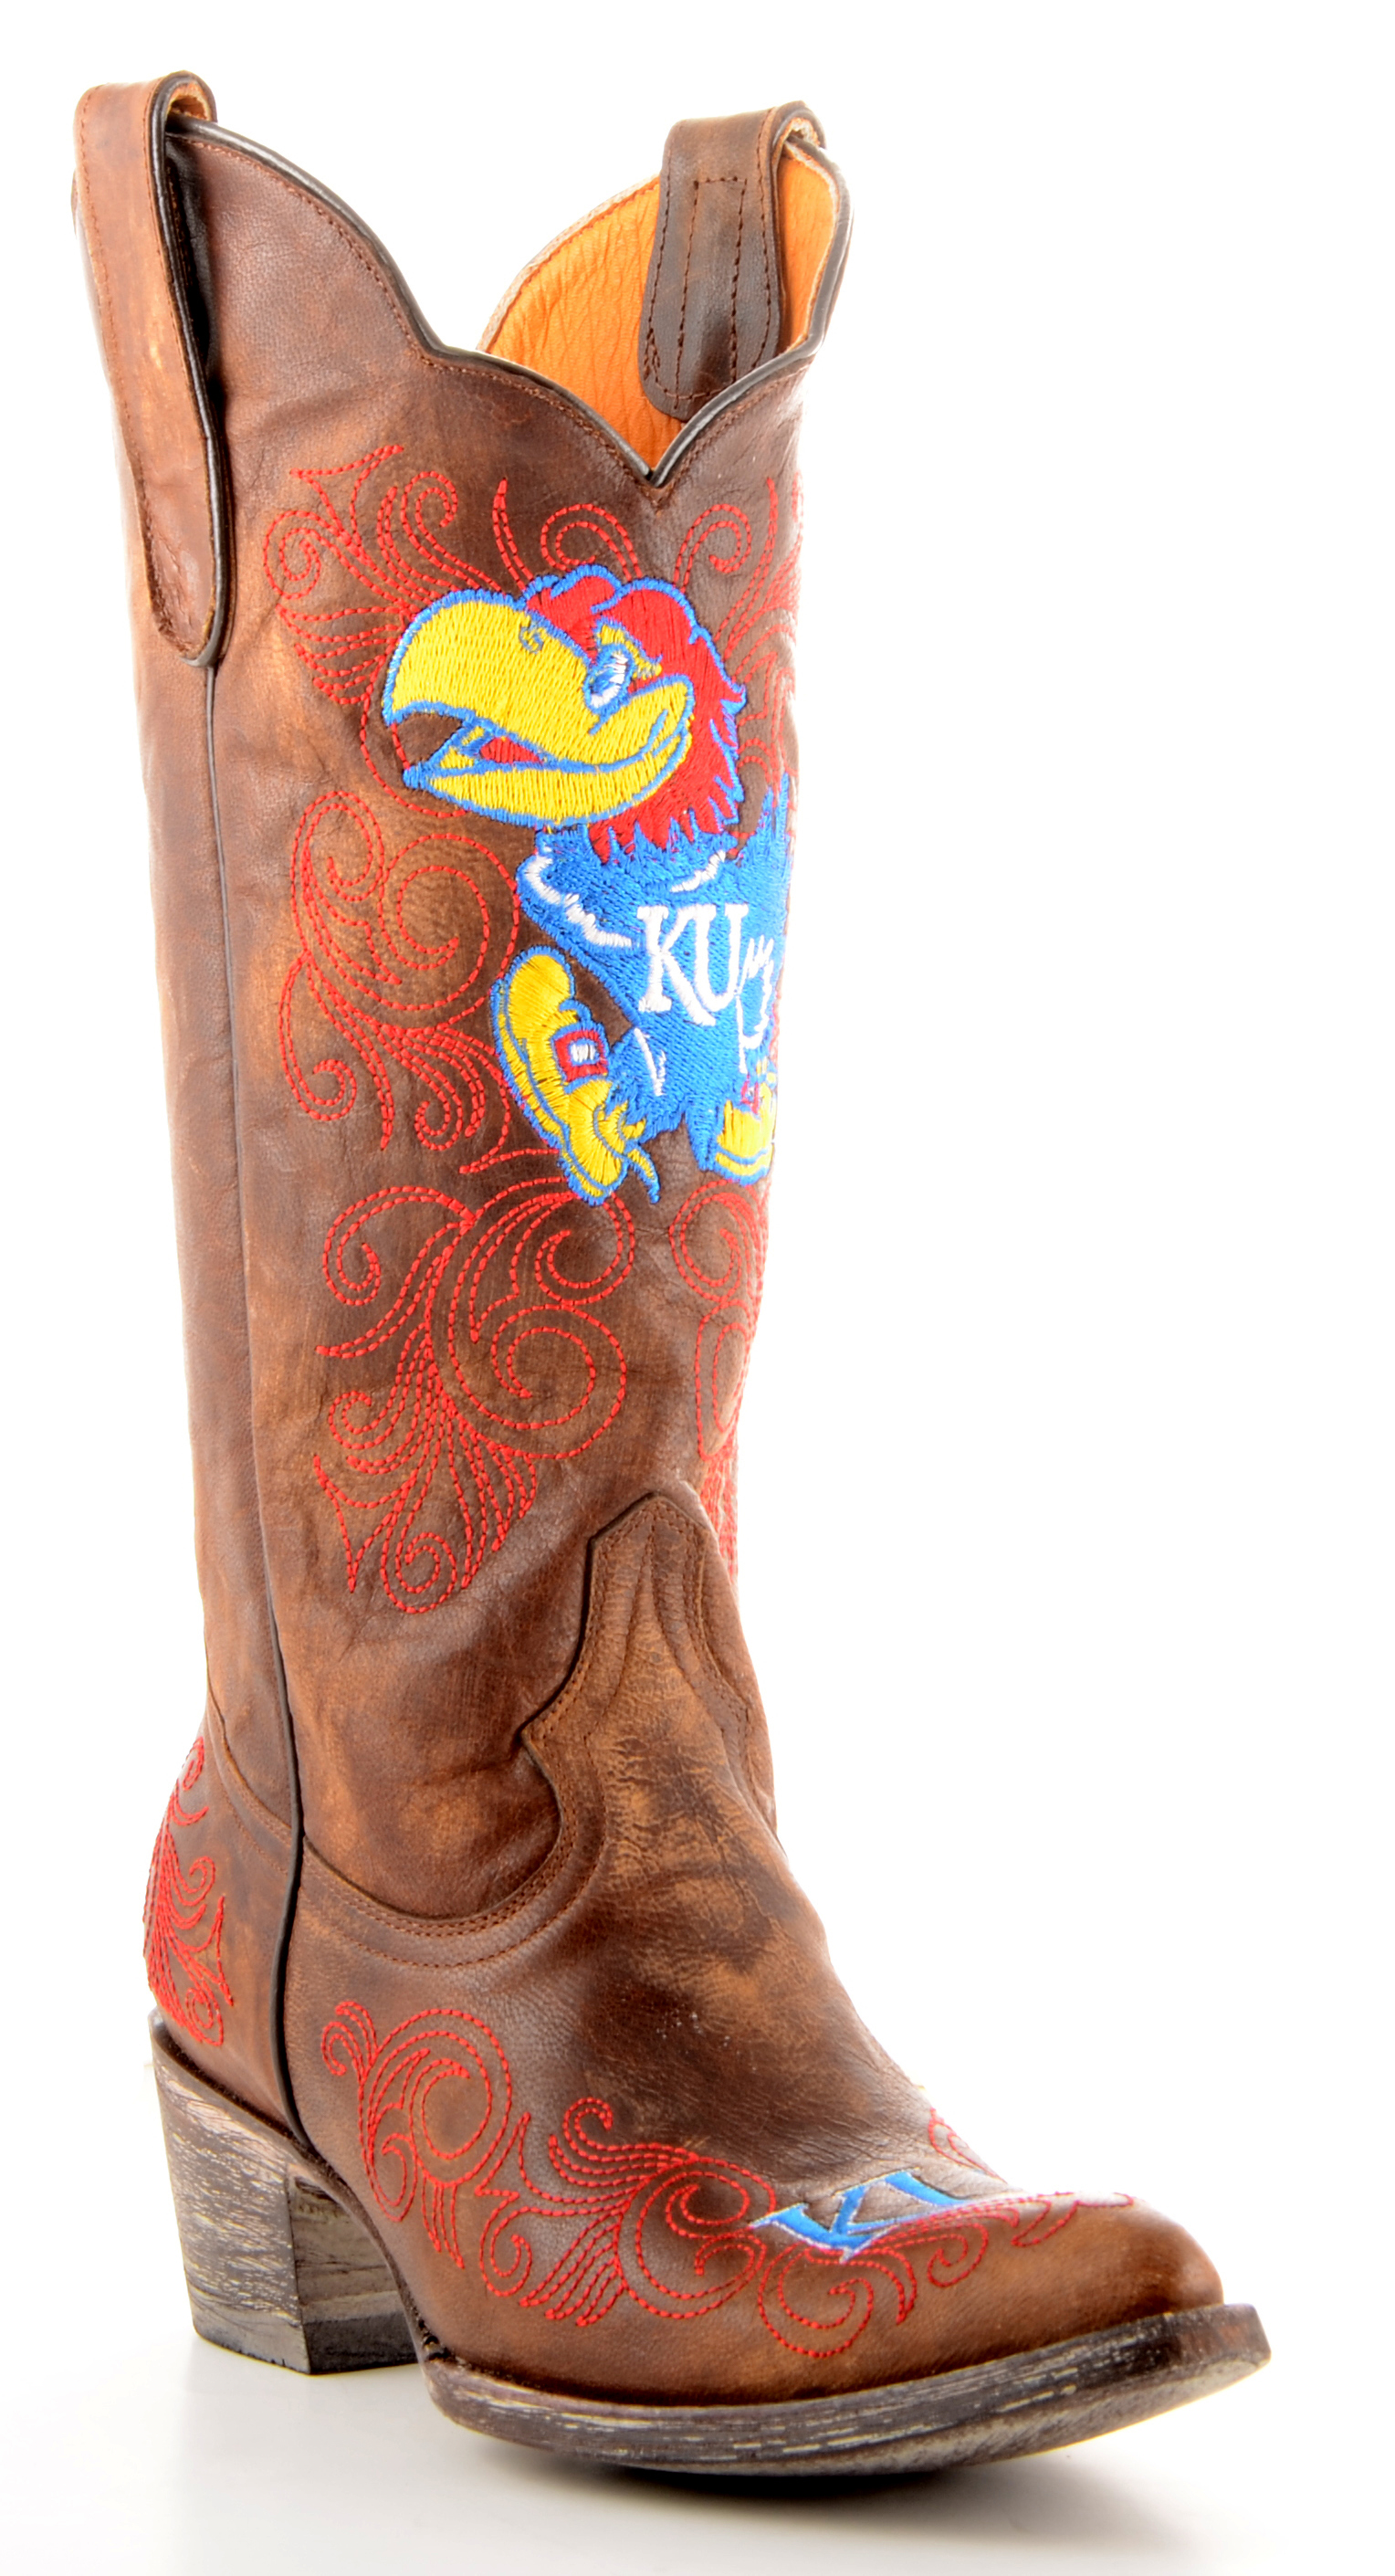 "Gameday Boots Womens 13"" Tall Leather University Of Kansas (Ku) Cowboy Boots by GameDay Boots"